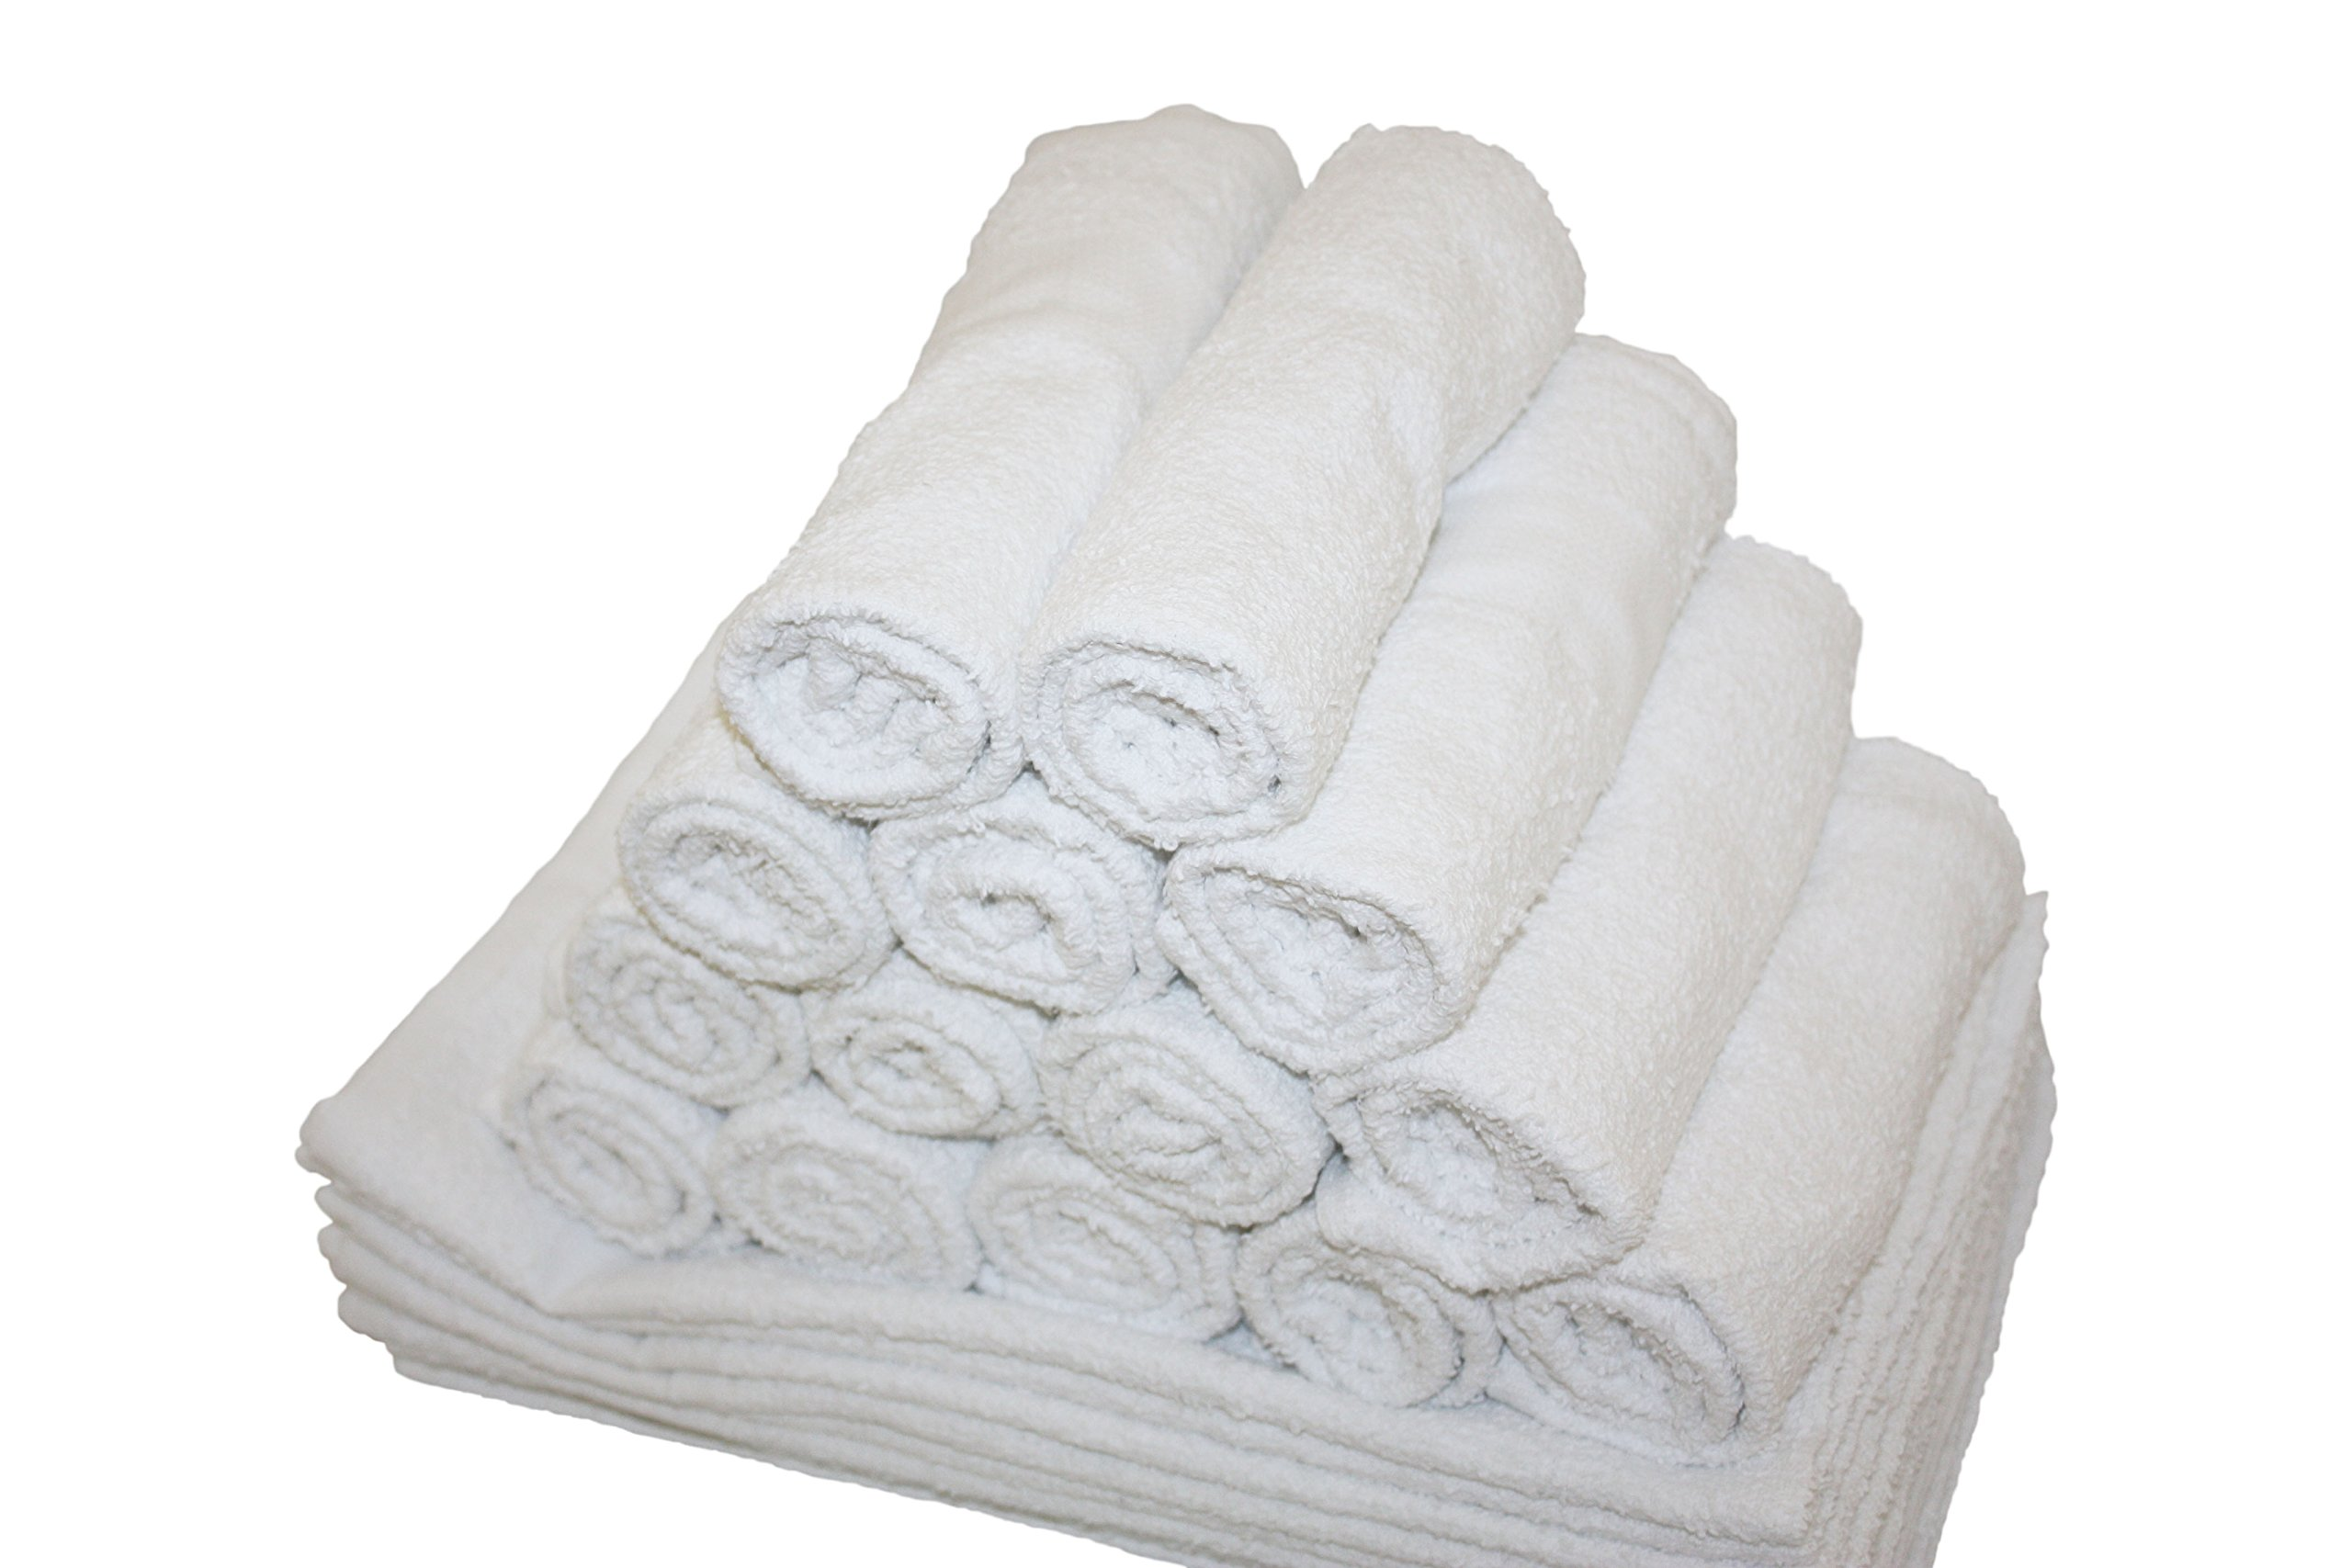 Atlas Economy Hand Towels 16x27 Inch (24 Bulk Pack) Solid White 100% Cotton - Salon, Gym, Spa, Massage, Spas, Motels, Restaurants, Cleaning, Auto & Home - Eco-Friendly